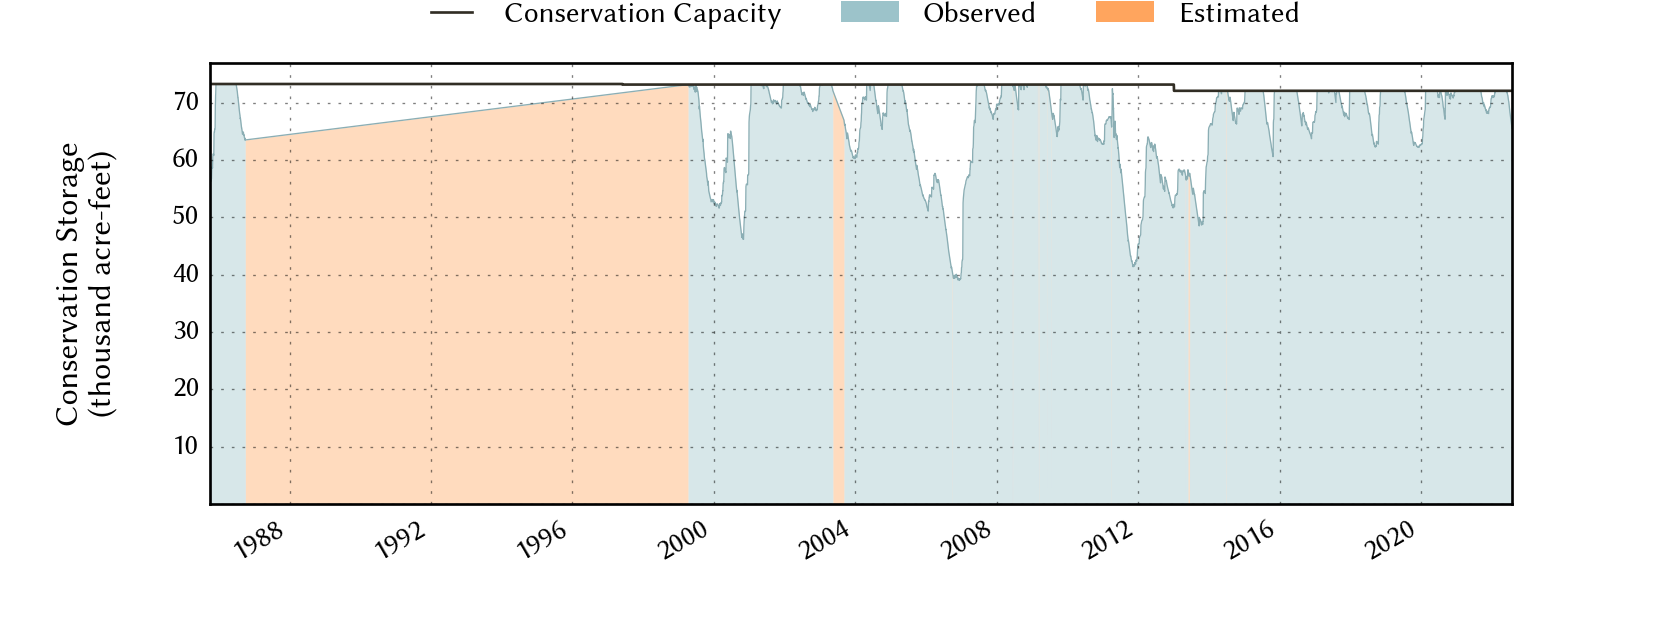 plot of storage data for the entire period of record